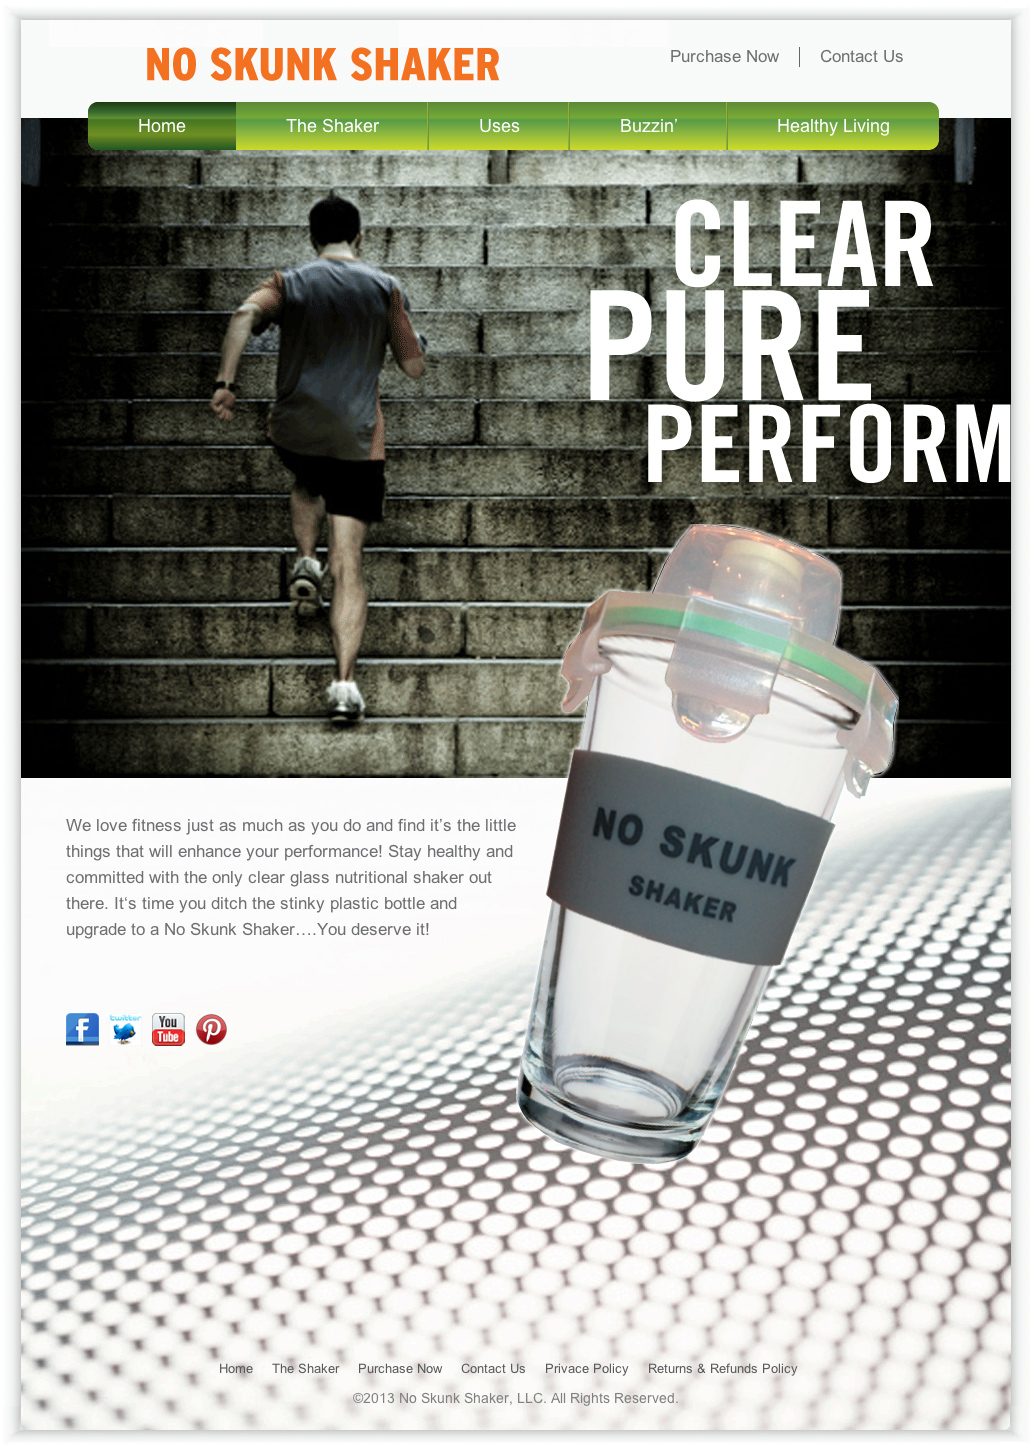 Website design, nutrition, health industry. No Skunk Shaker